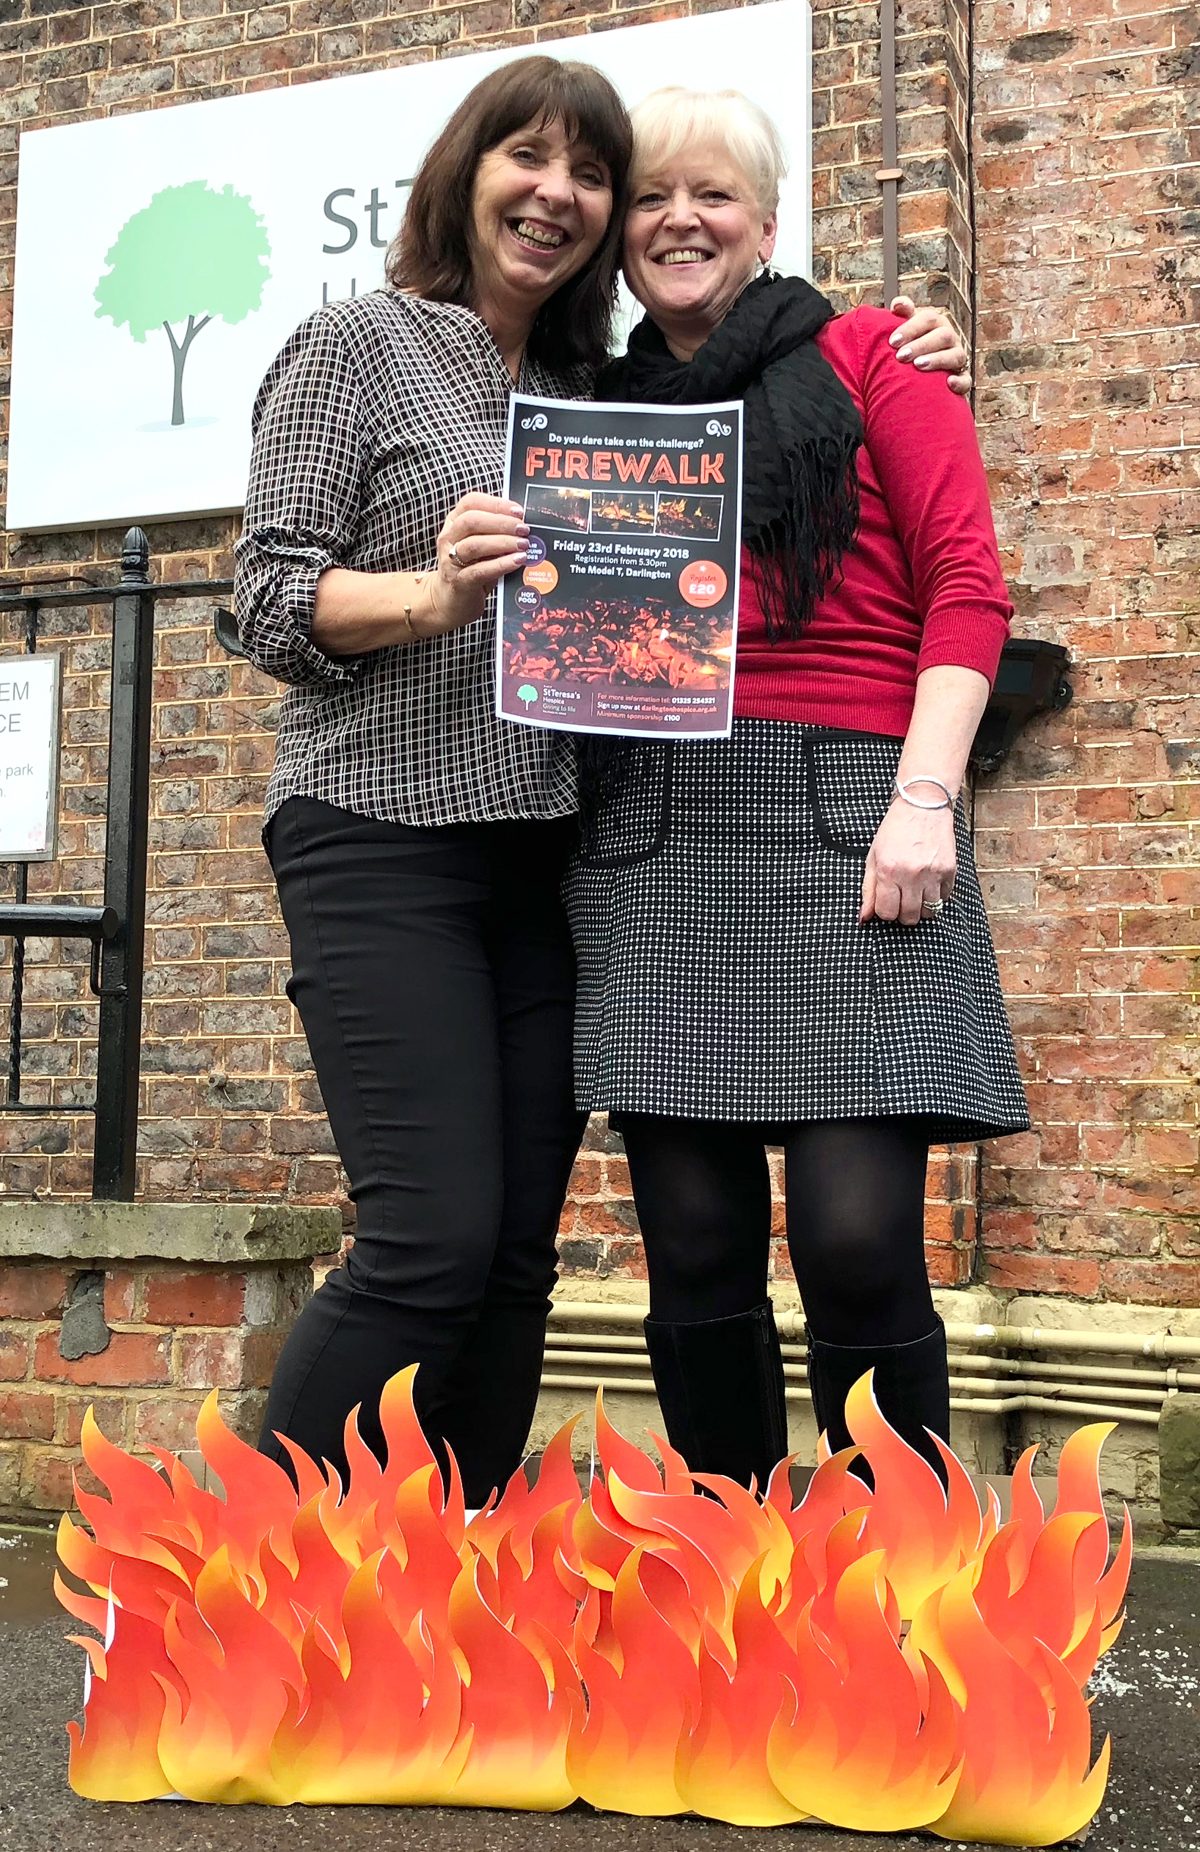 Brave Fire Walkers Wanted for Local Hospice Fundraiser